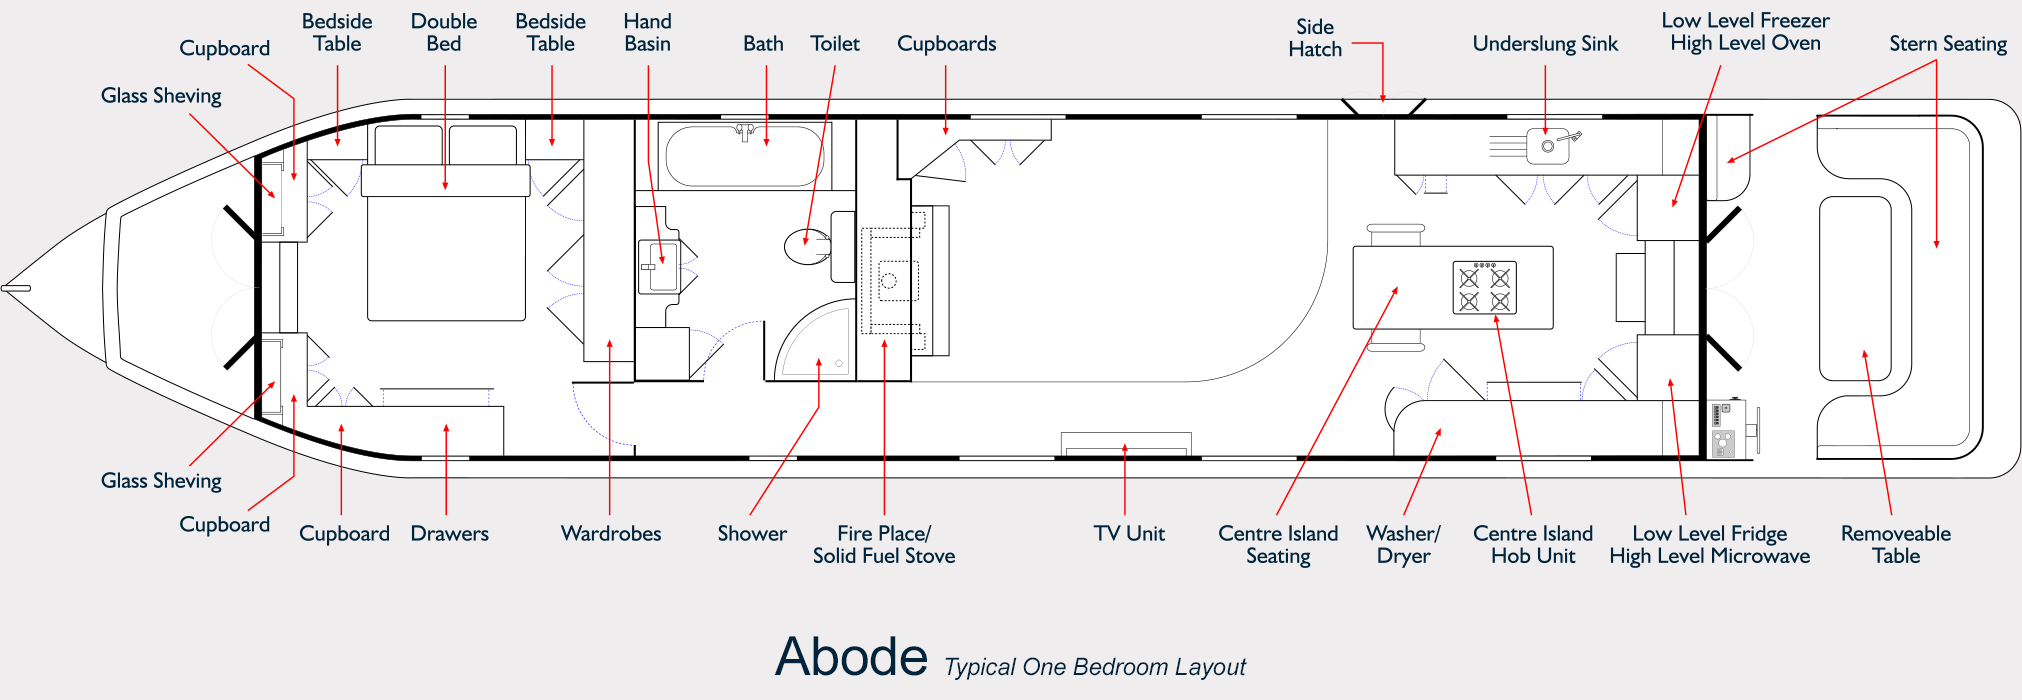 Abode Widebeam - One Bedroom Floor Plan